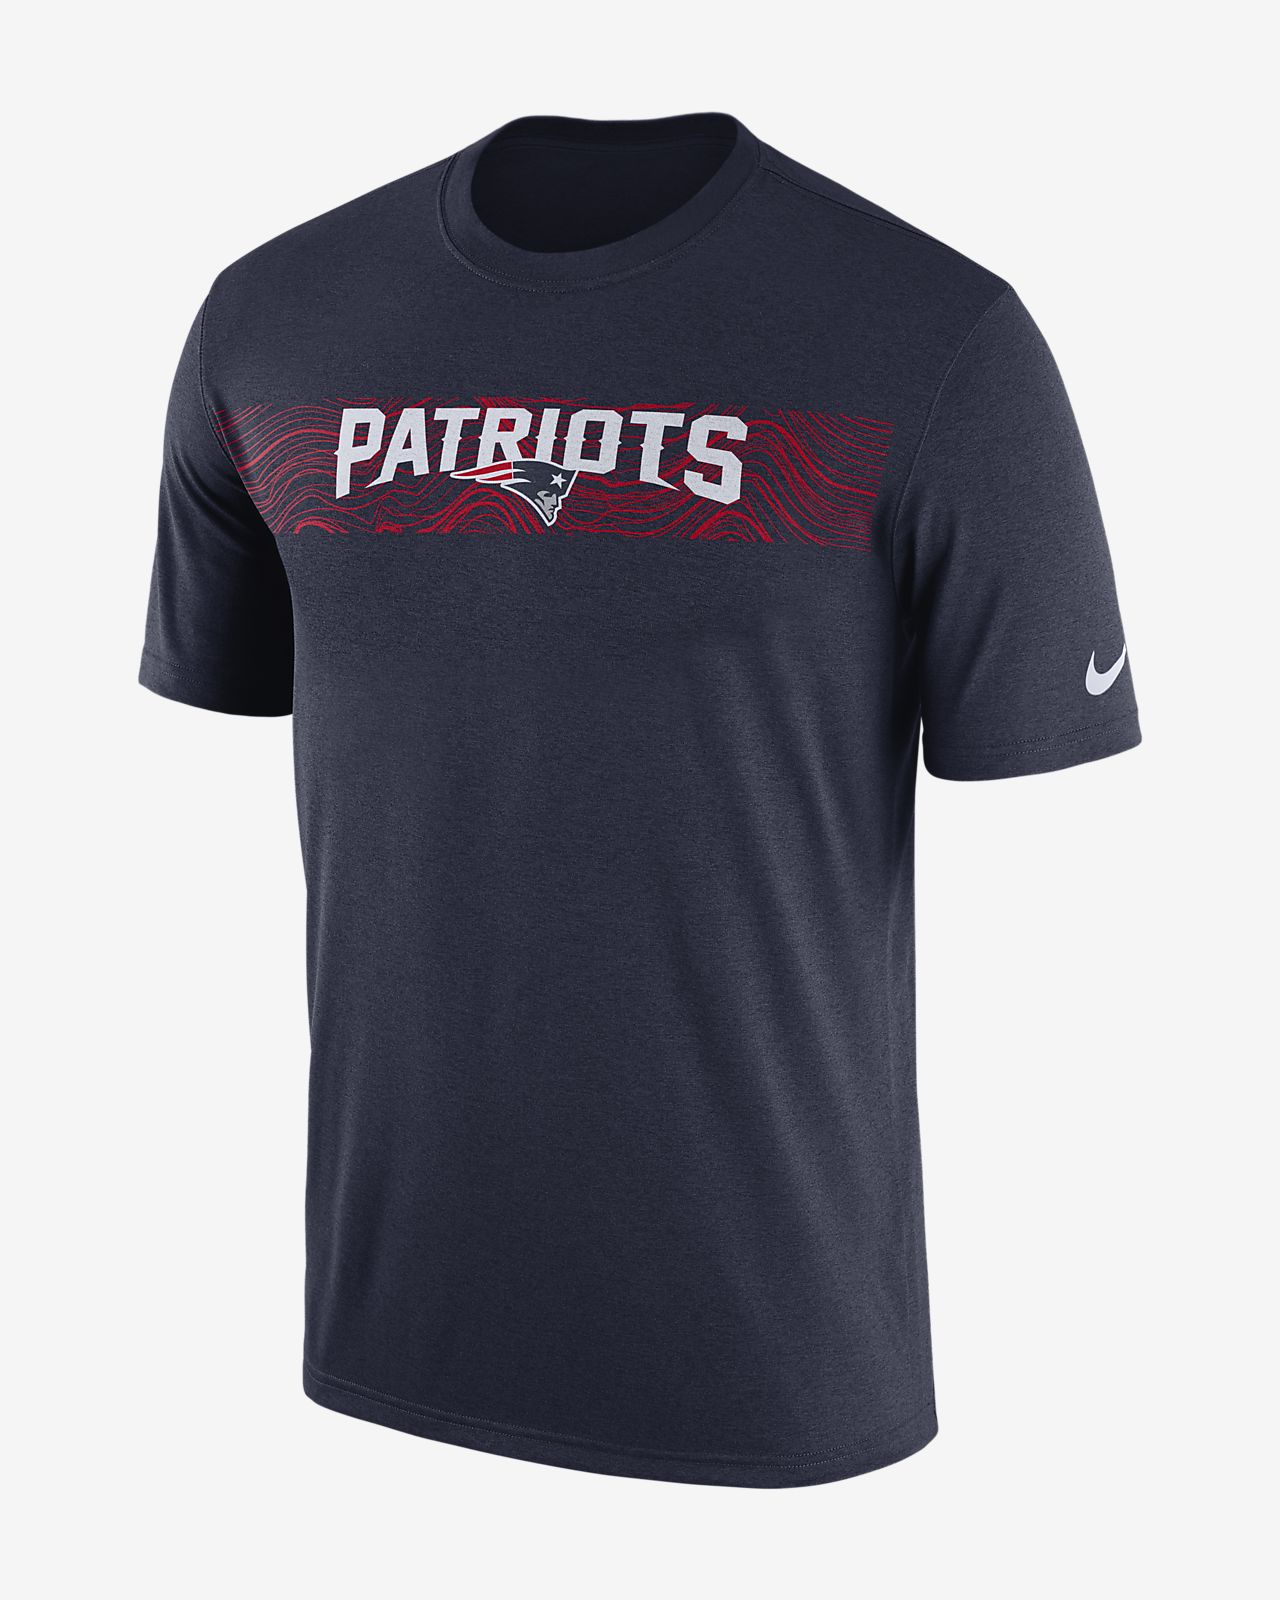 eeed2954 Nike Dri-FIT Legend Seismic (NFL Patriots) Men's T-Shirt. Nike.com CA